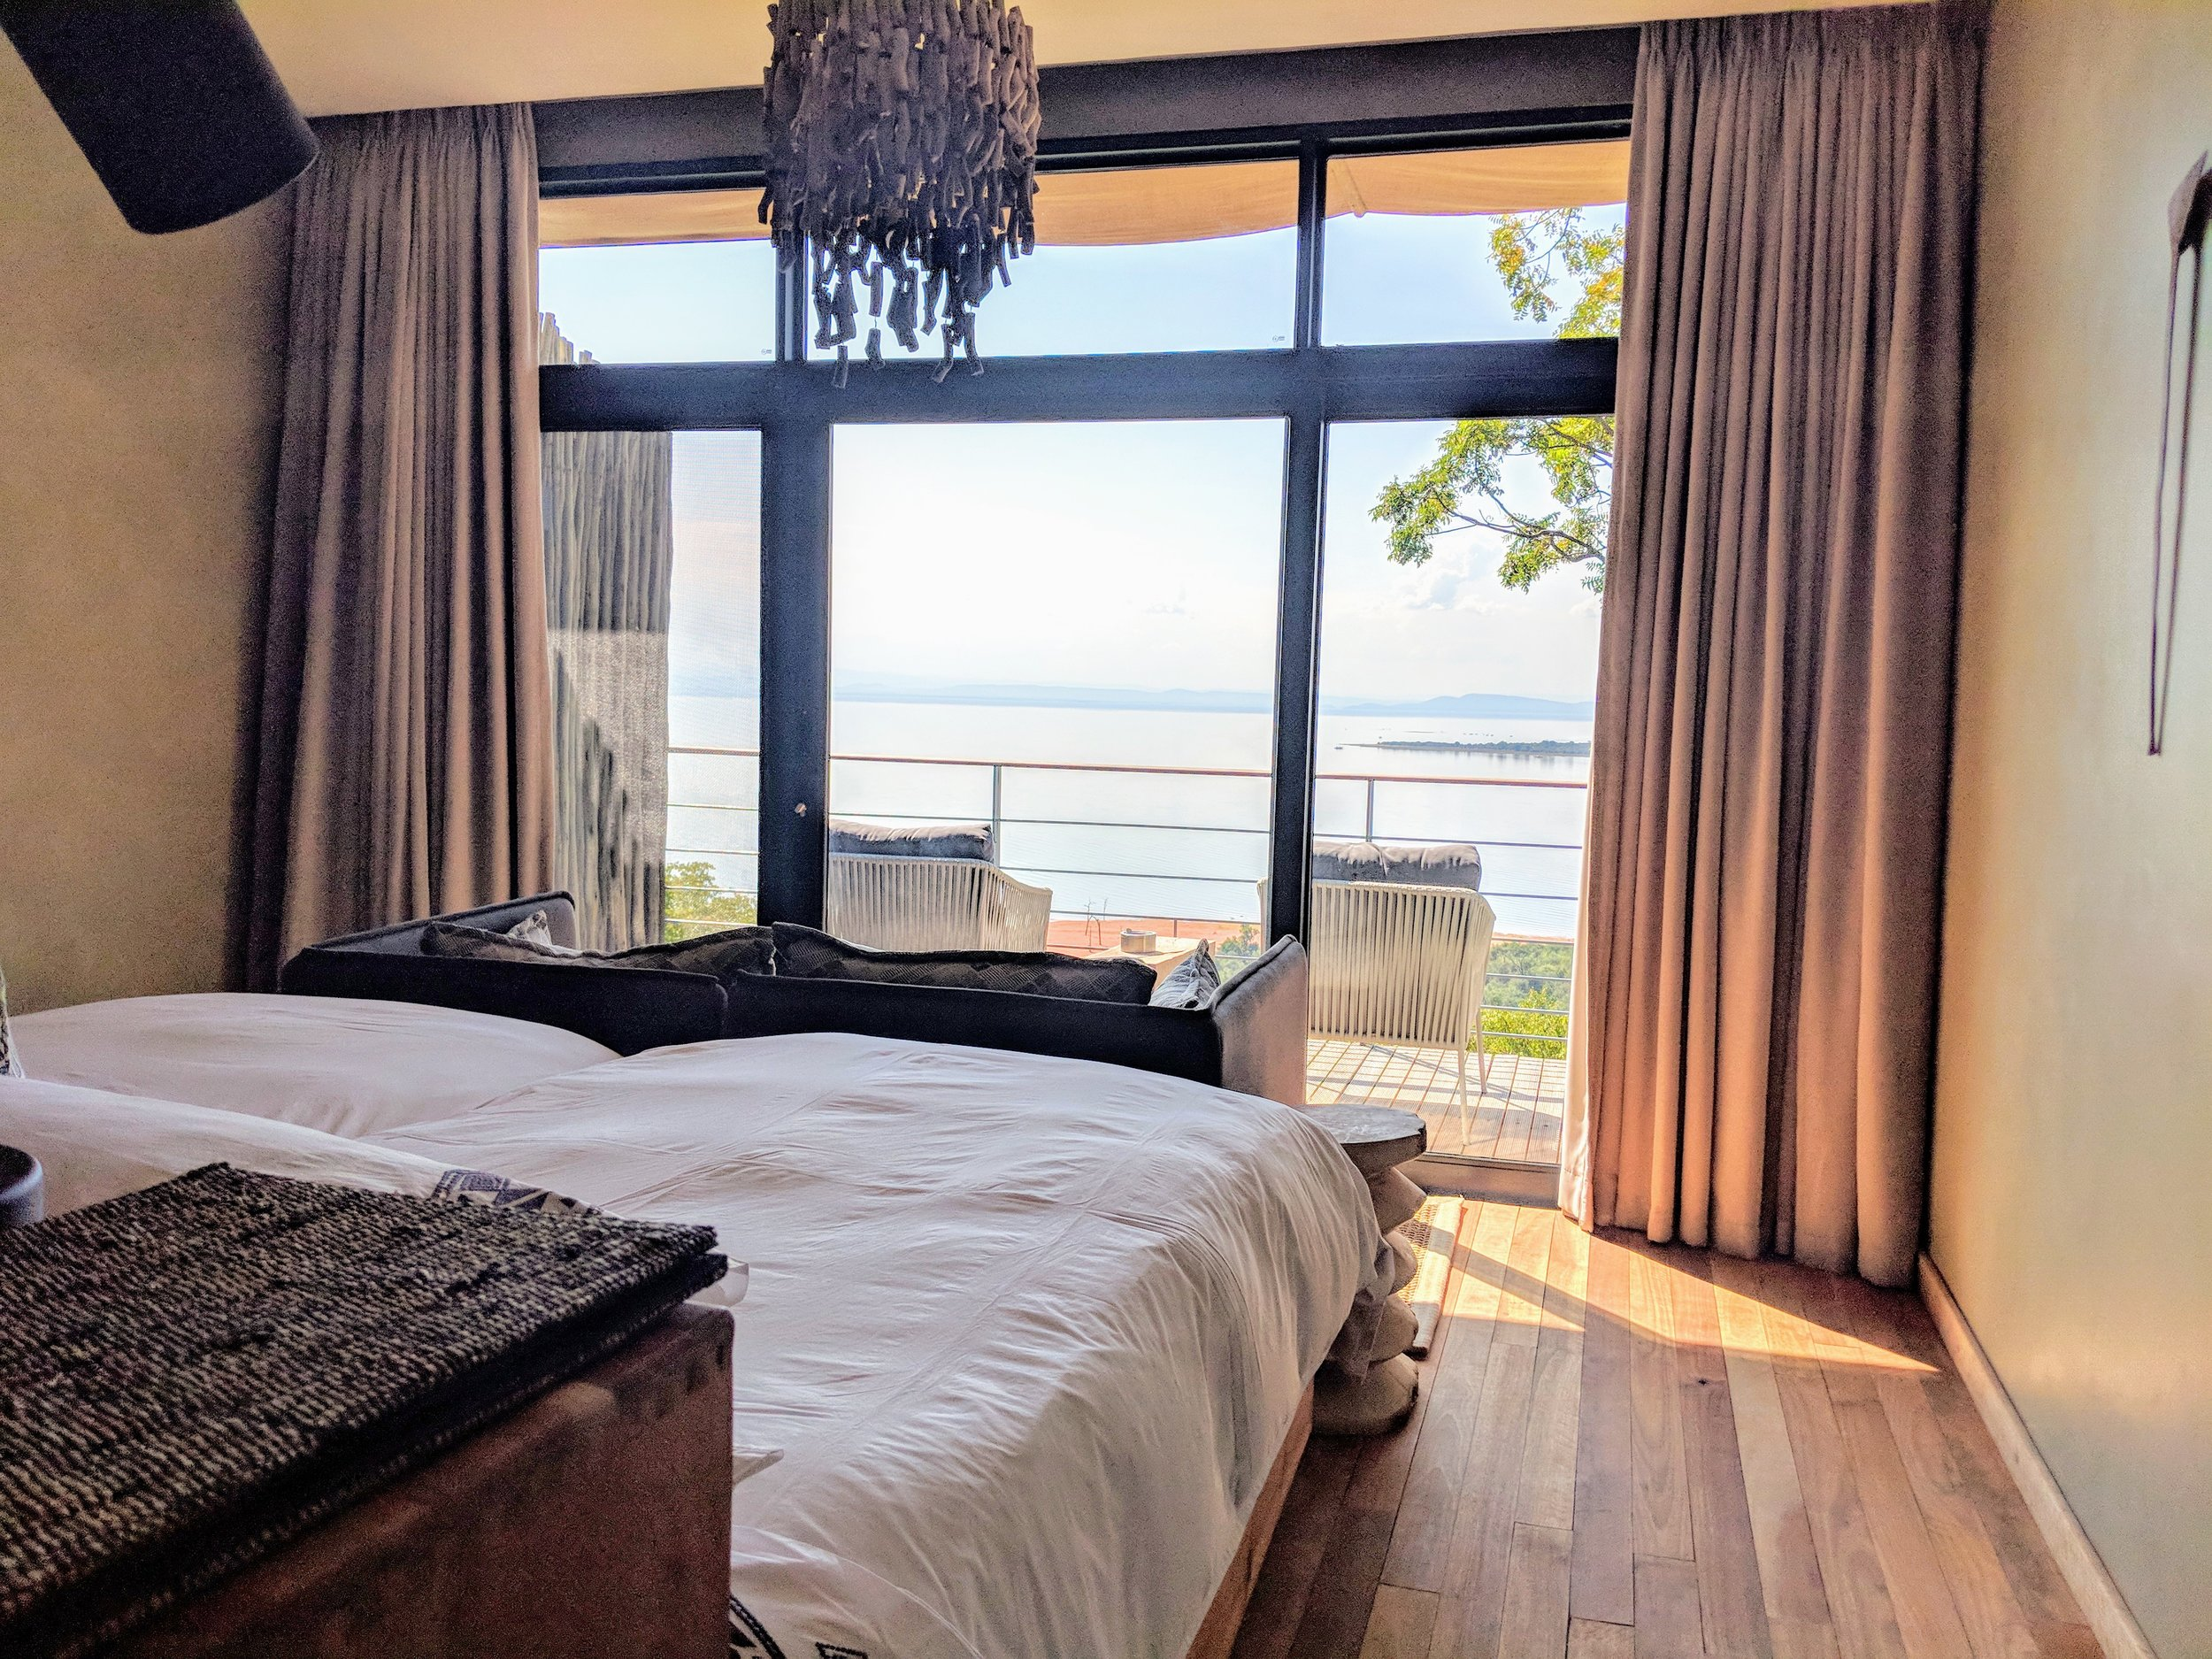 Our gorgeous lake view room at Bumi Hills...pictures don't do it justice!